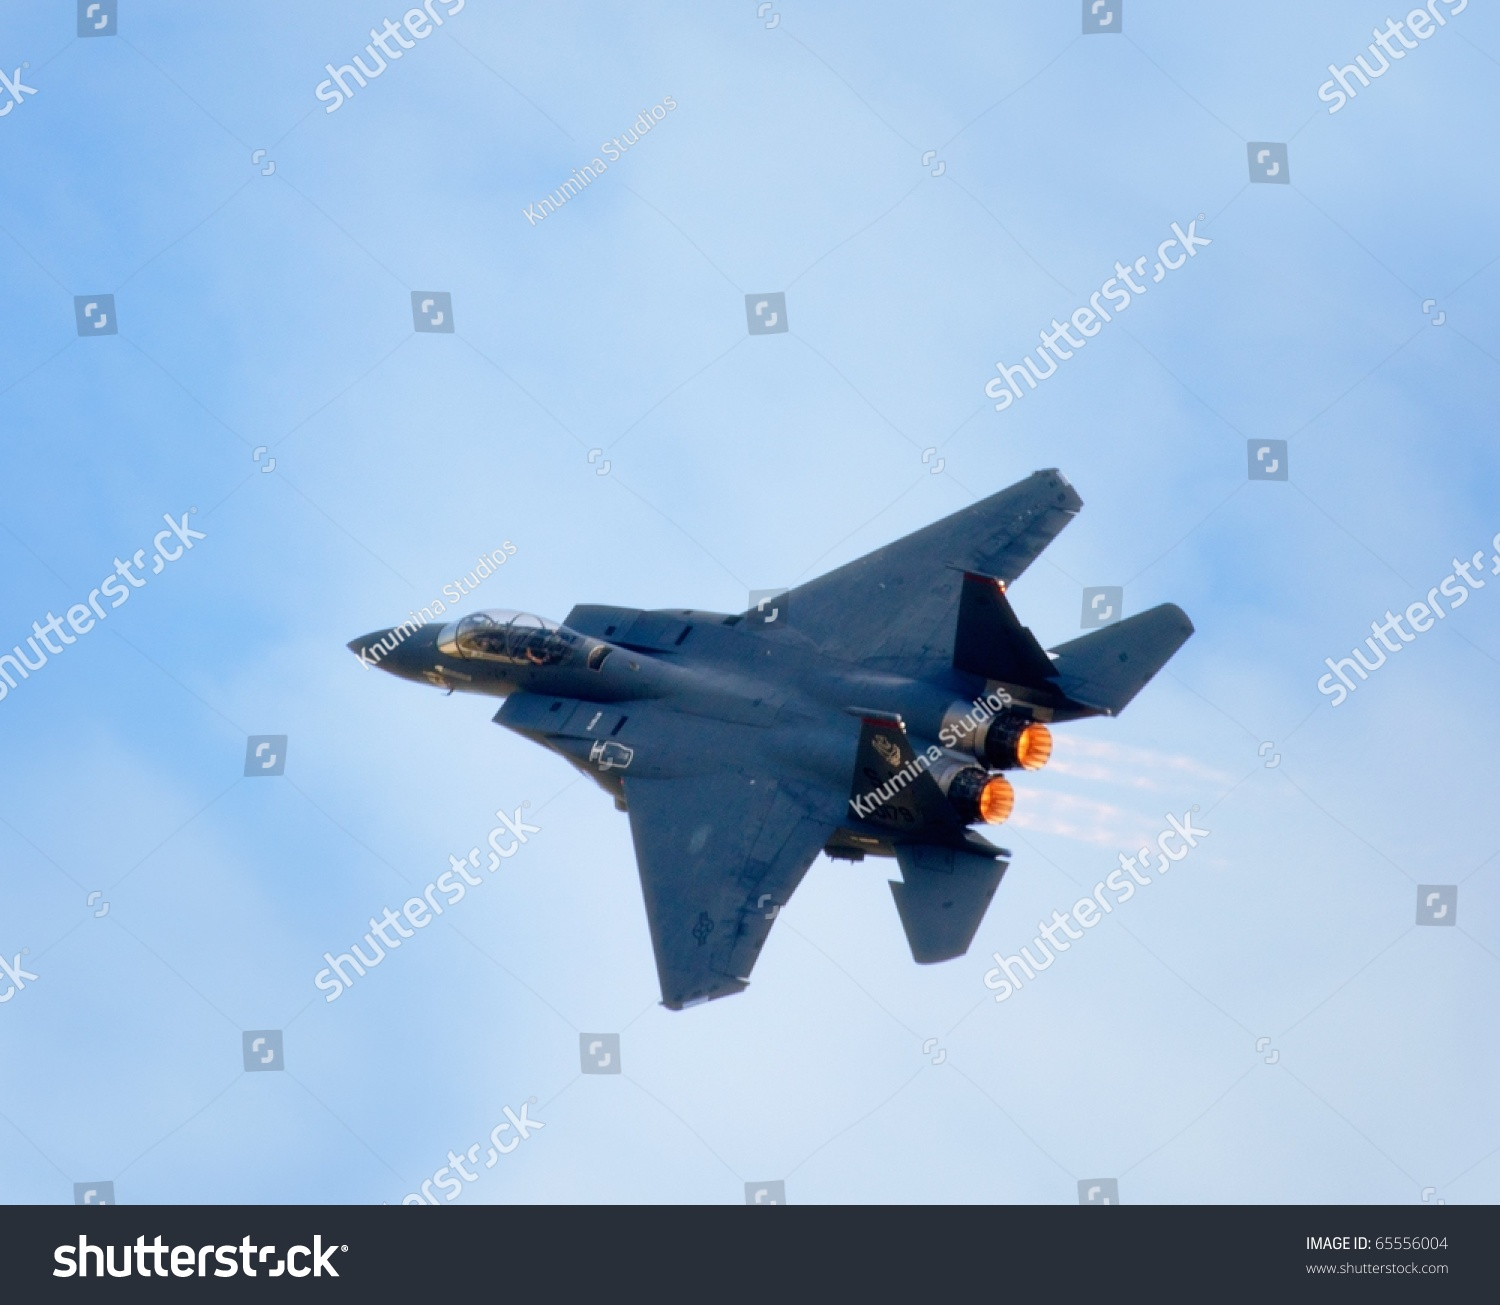 Homestead (FL) United States  city pictures gallery : HOMESTEAD, FL NOVEMBER 7 : United States fighter jet plane over ...